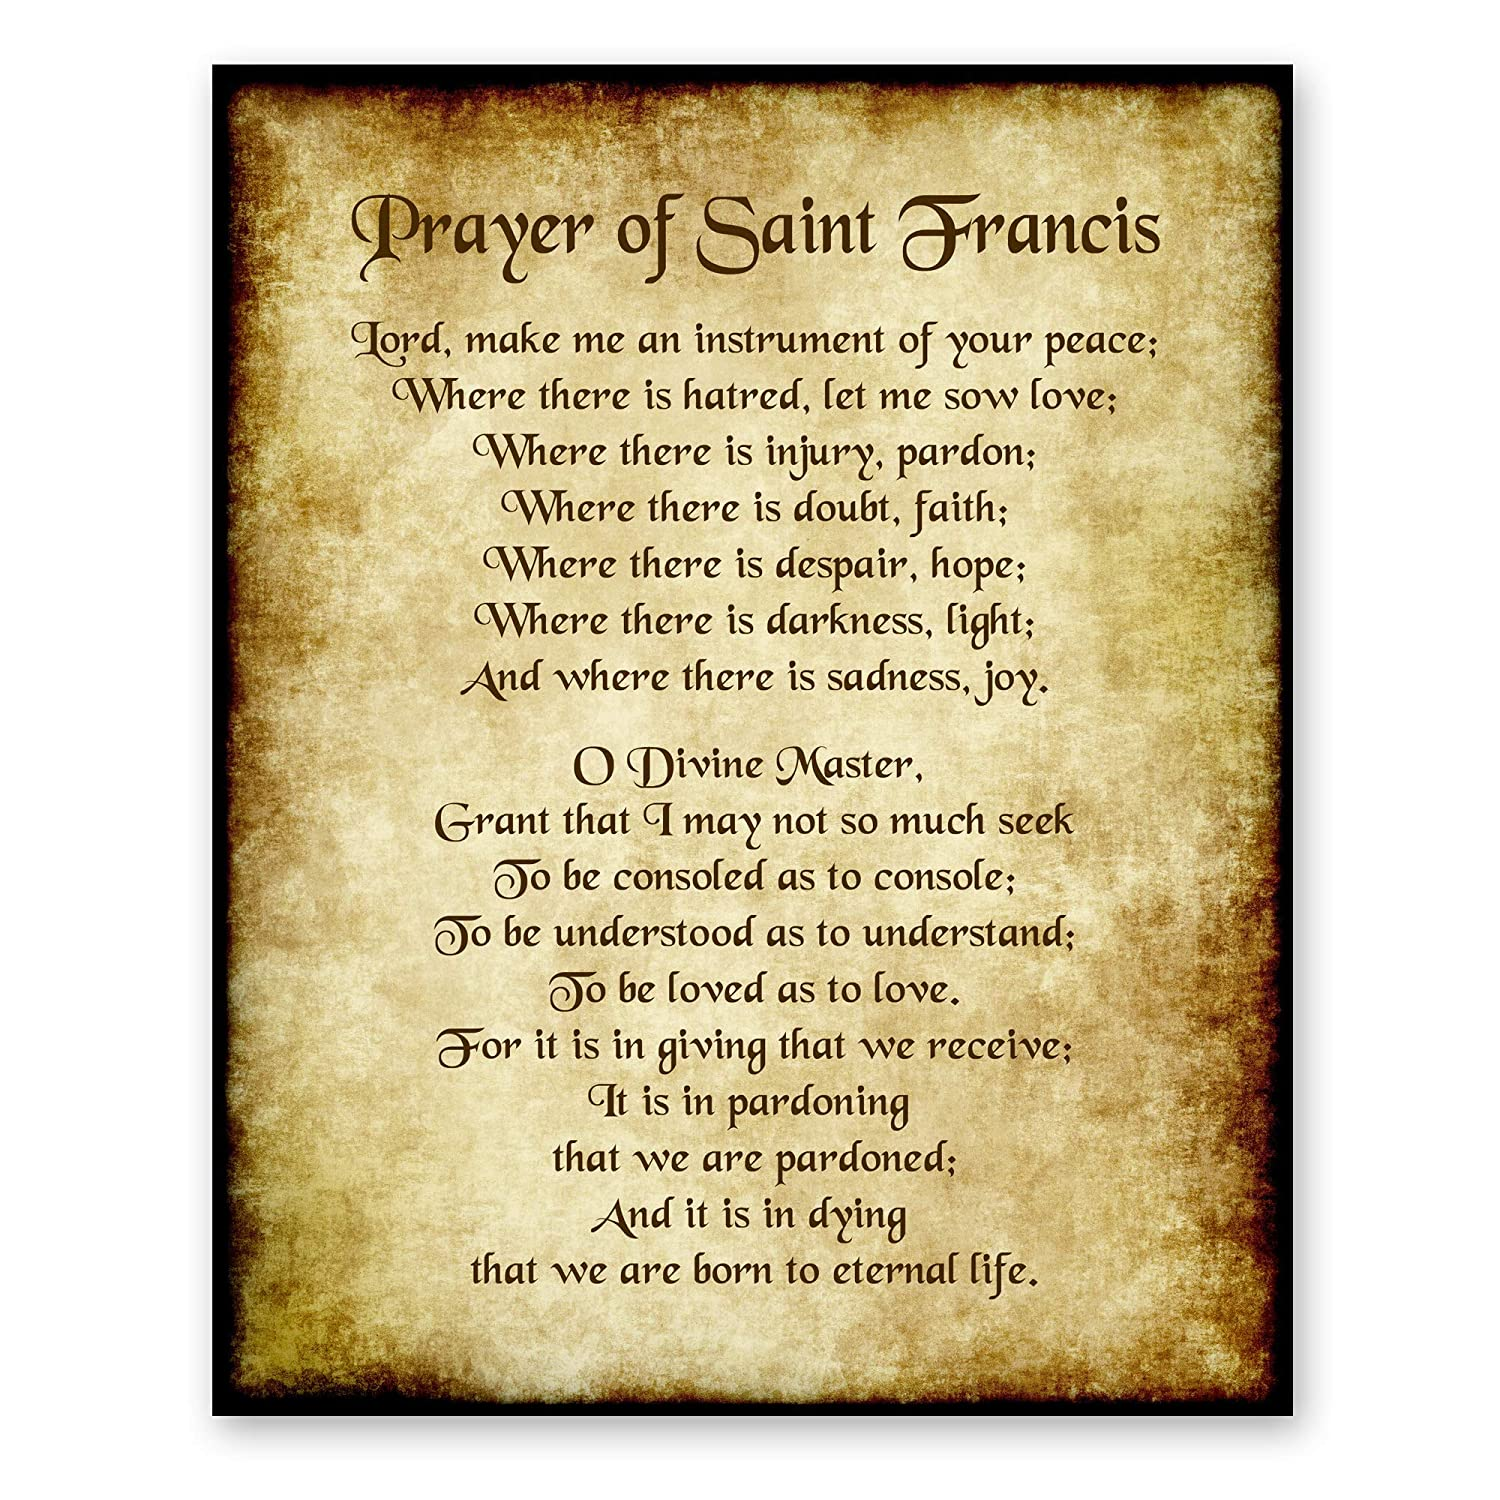 photo relating to St Francis Prayer Printable named : St Francis Prayer Inspirational Uplifting